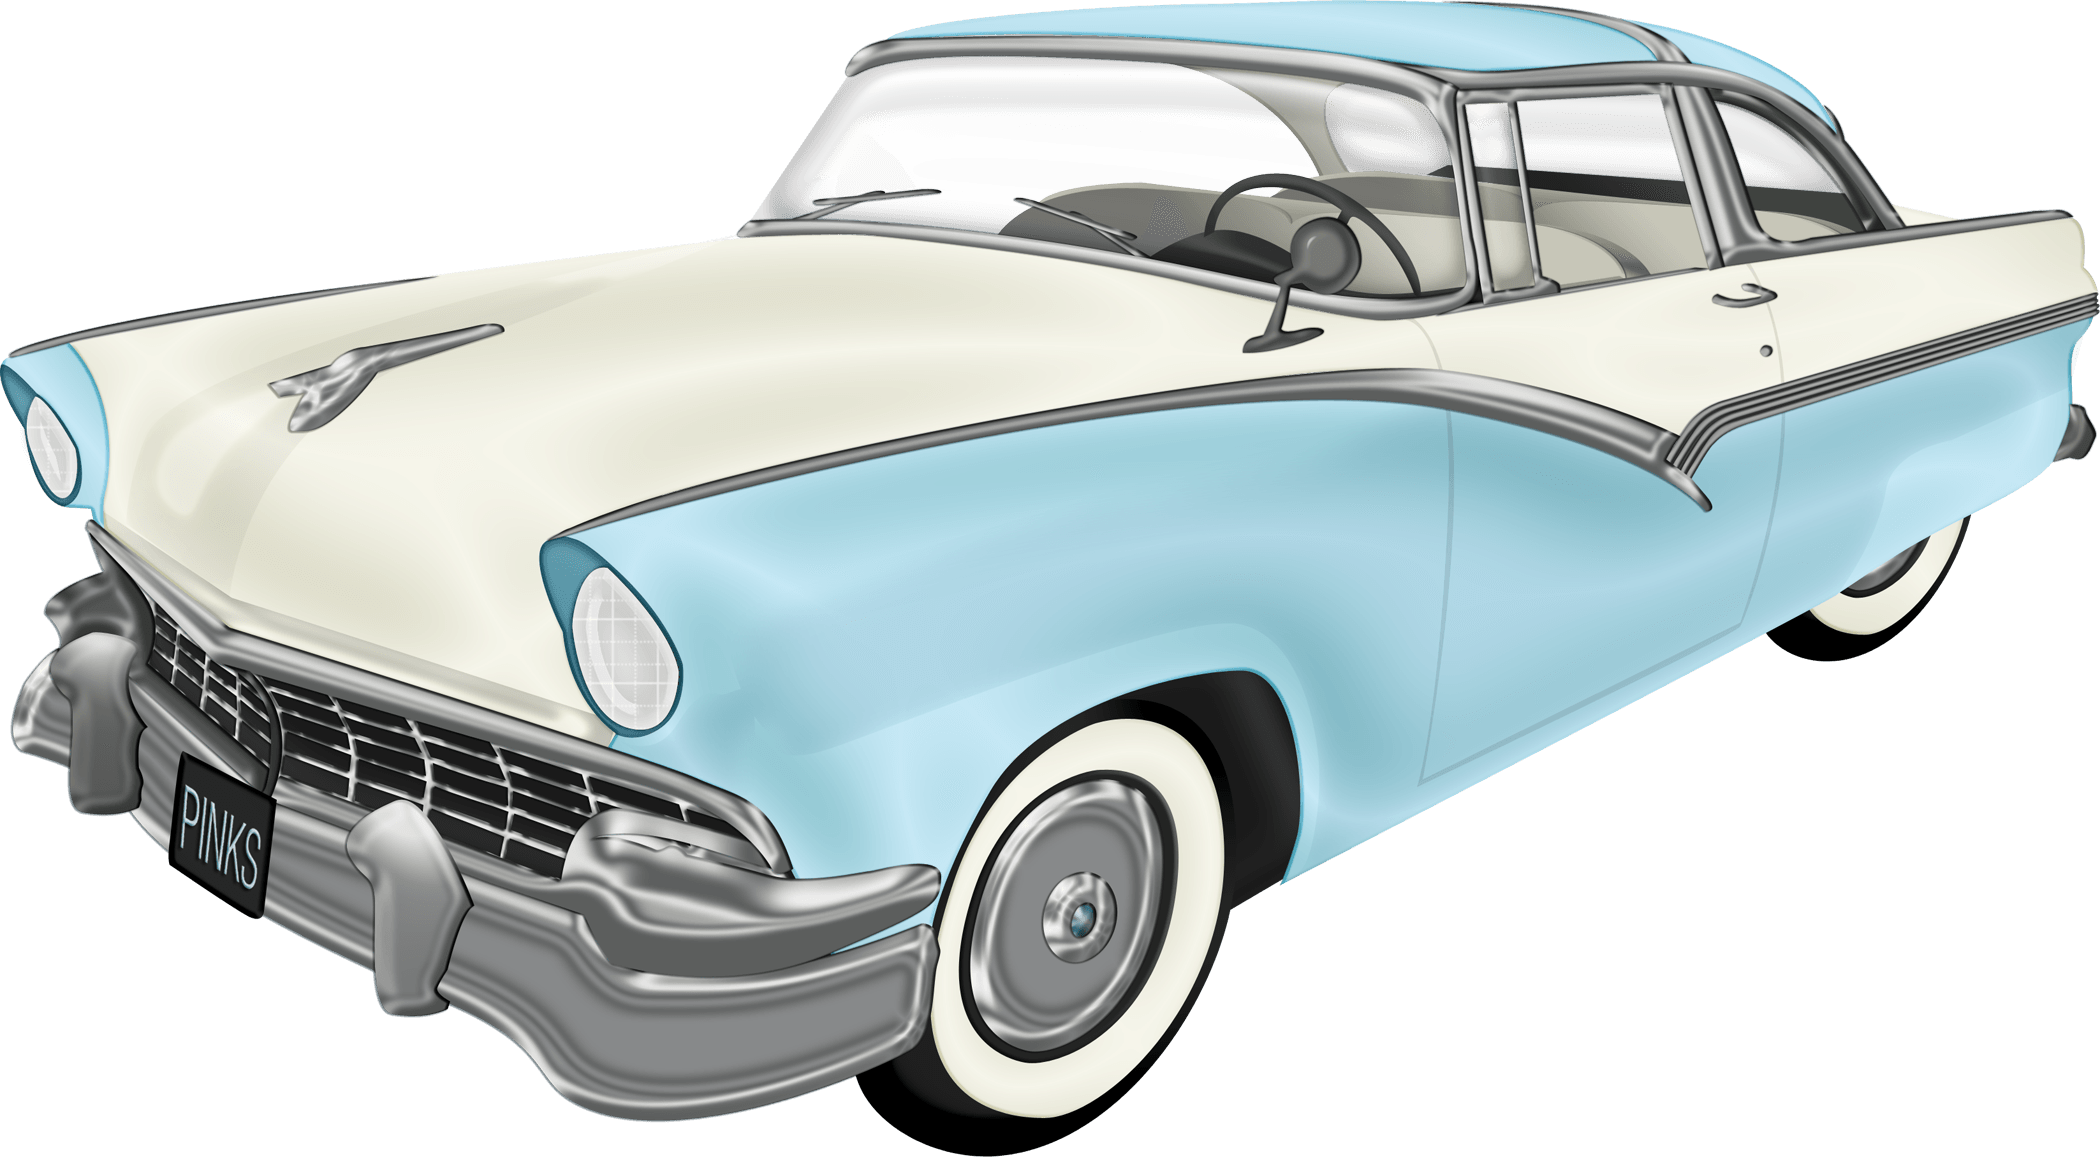 Cadillac crown clipart graphic transparent download Cadillac PNG Image - PurePNG | Free transparent CC0 PNG Image Library graphic transparent download